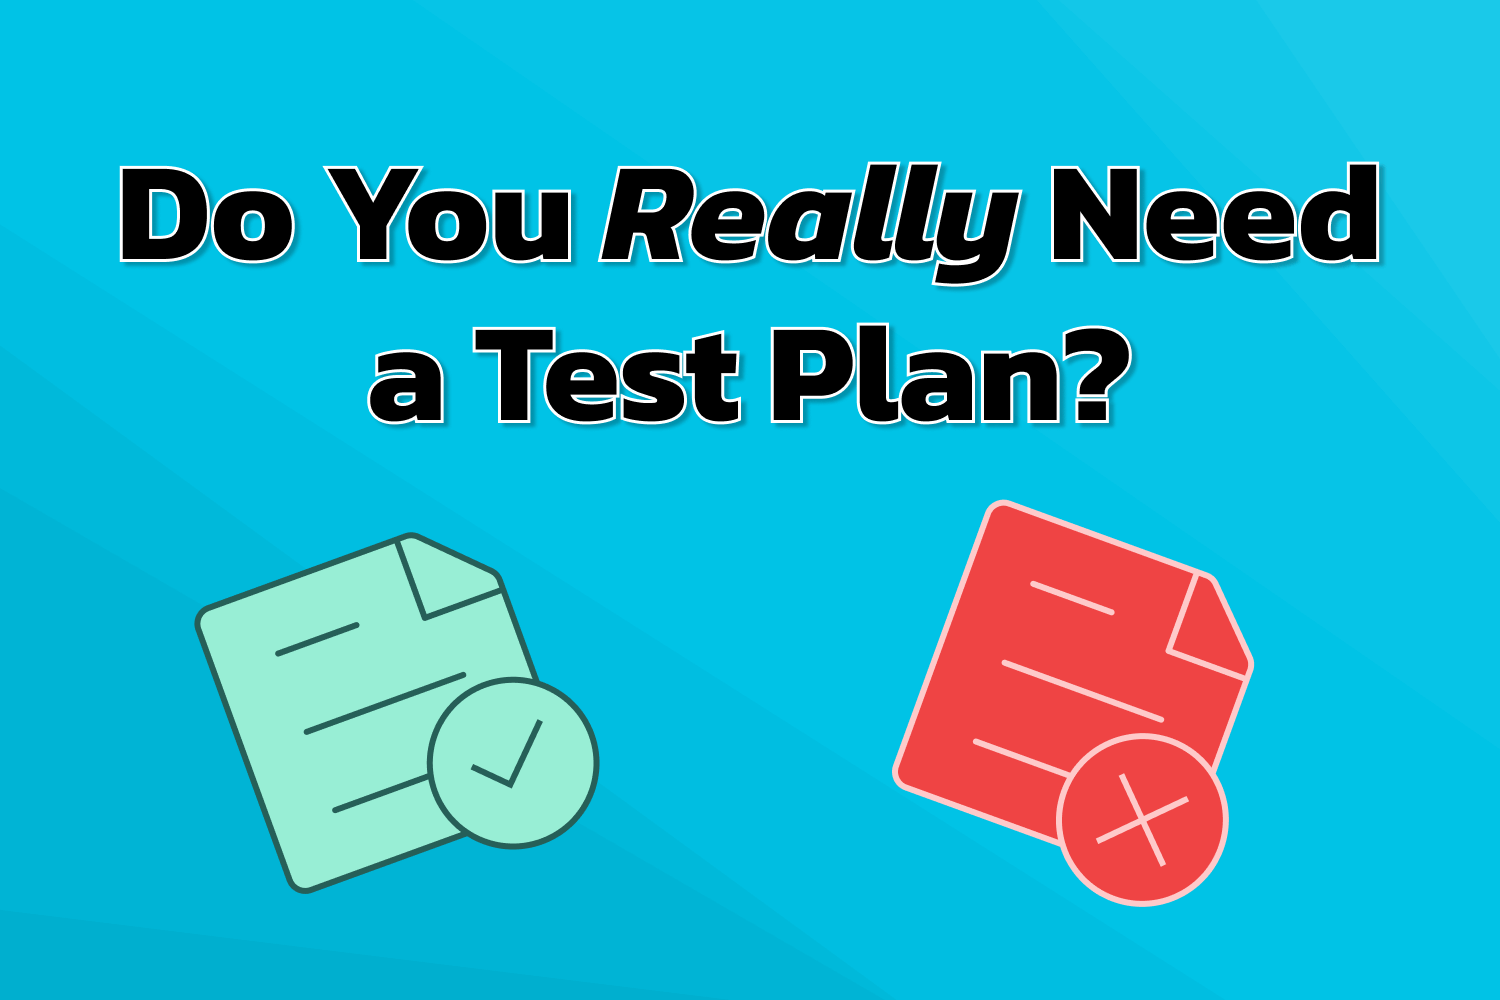 Do You Really Need a Test Plan?